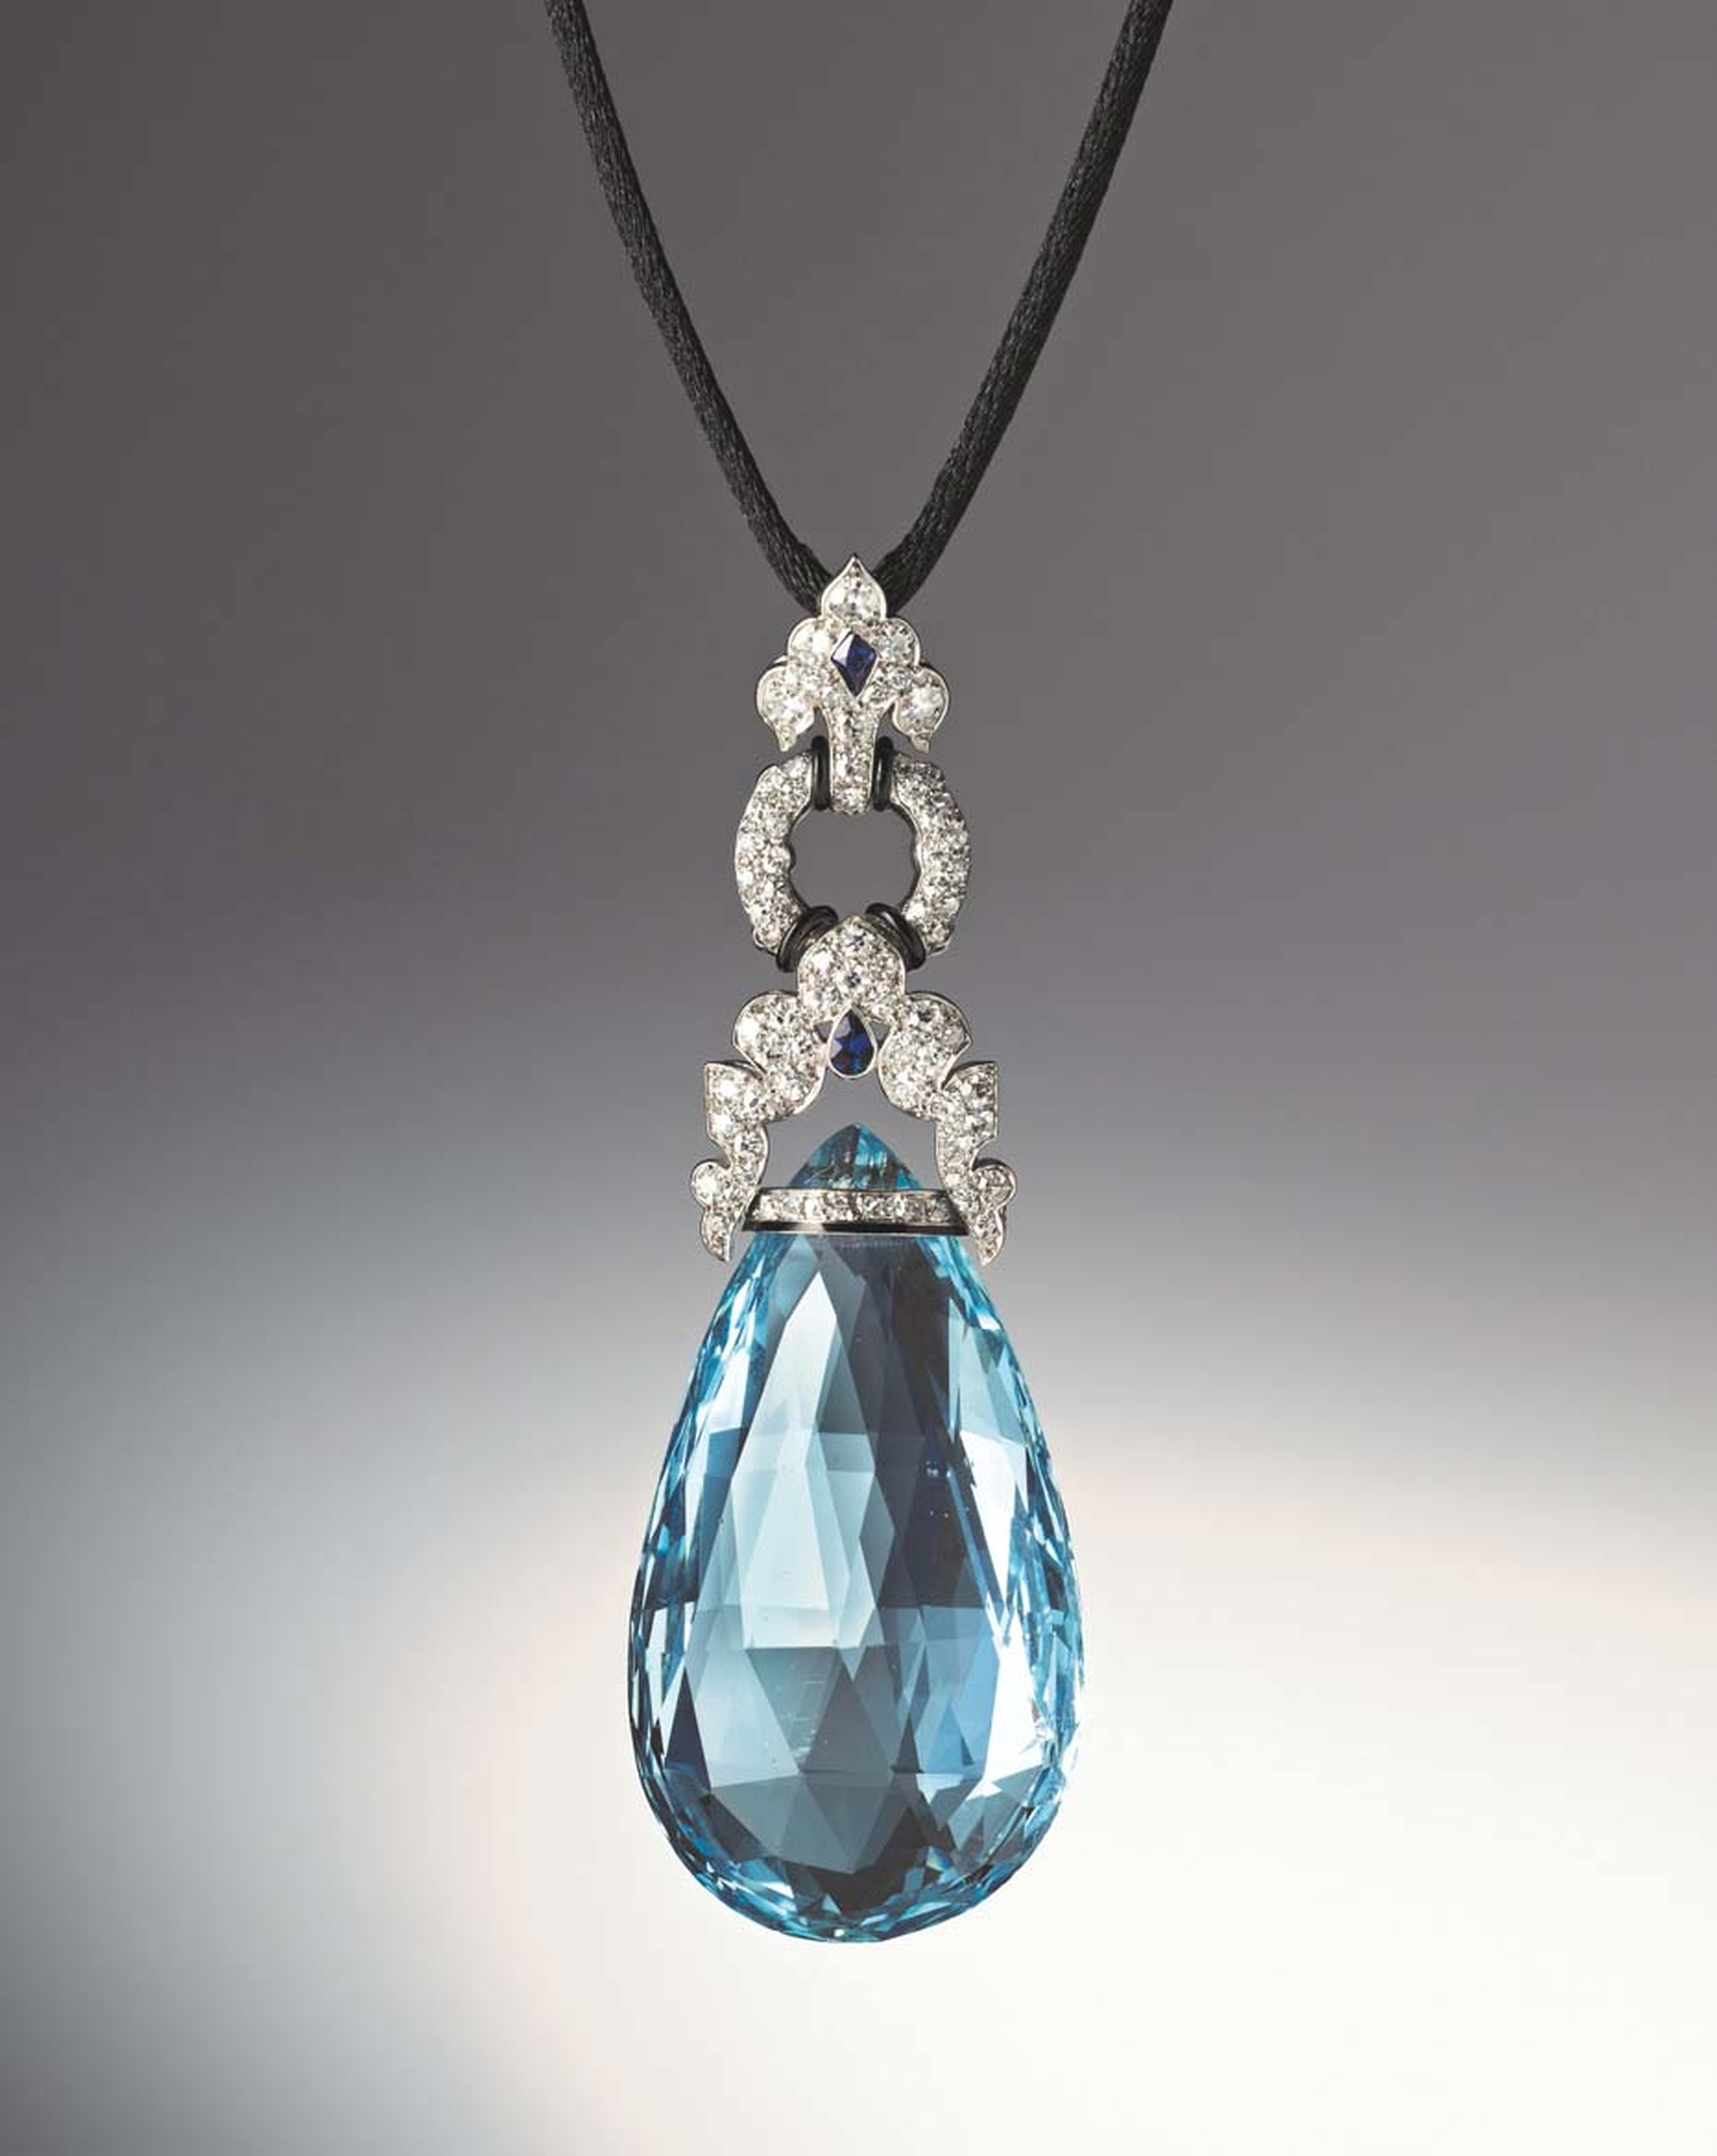 Art Deco aquamarine briolette pendant set with diamonds, two fancy-cut sapphires, as well as bands of black enamel set in platinum by Marzo, Paris, circa 1925. Available at Hancocks.